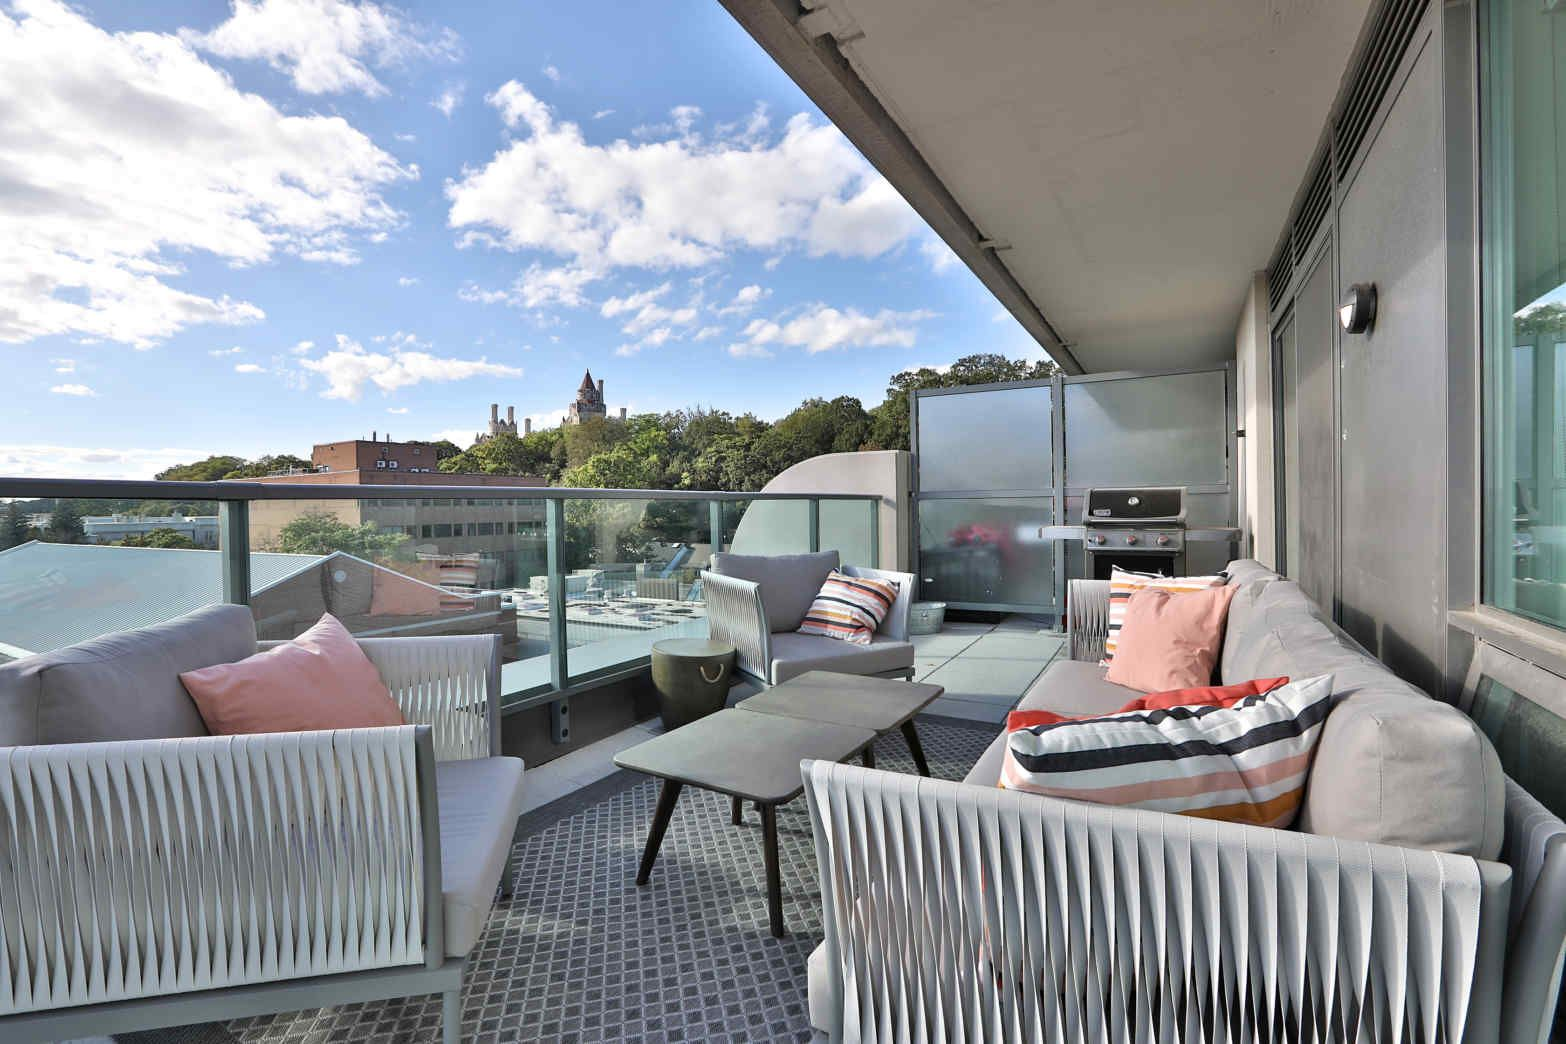 How To Make The Most Out Of Your Toronto Condo Balcony